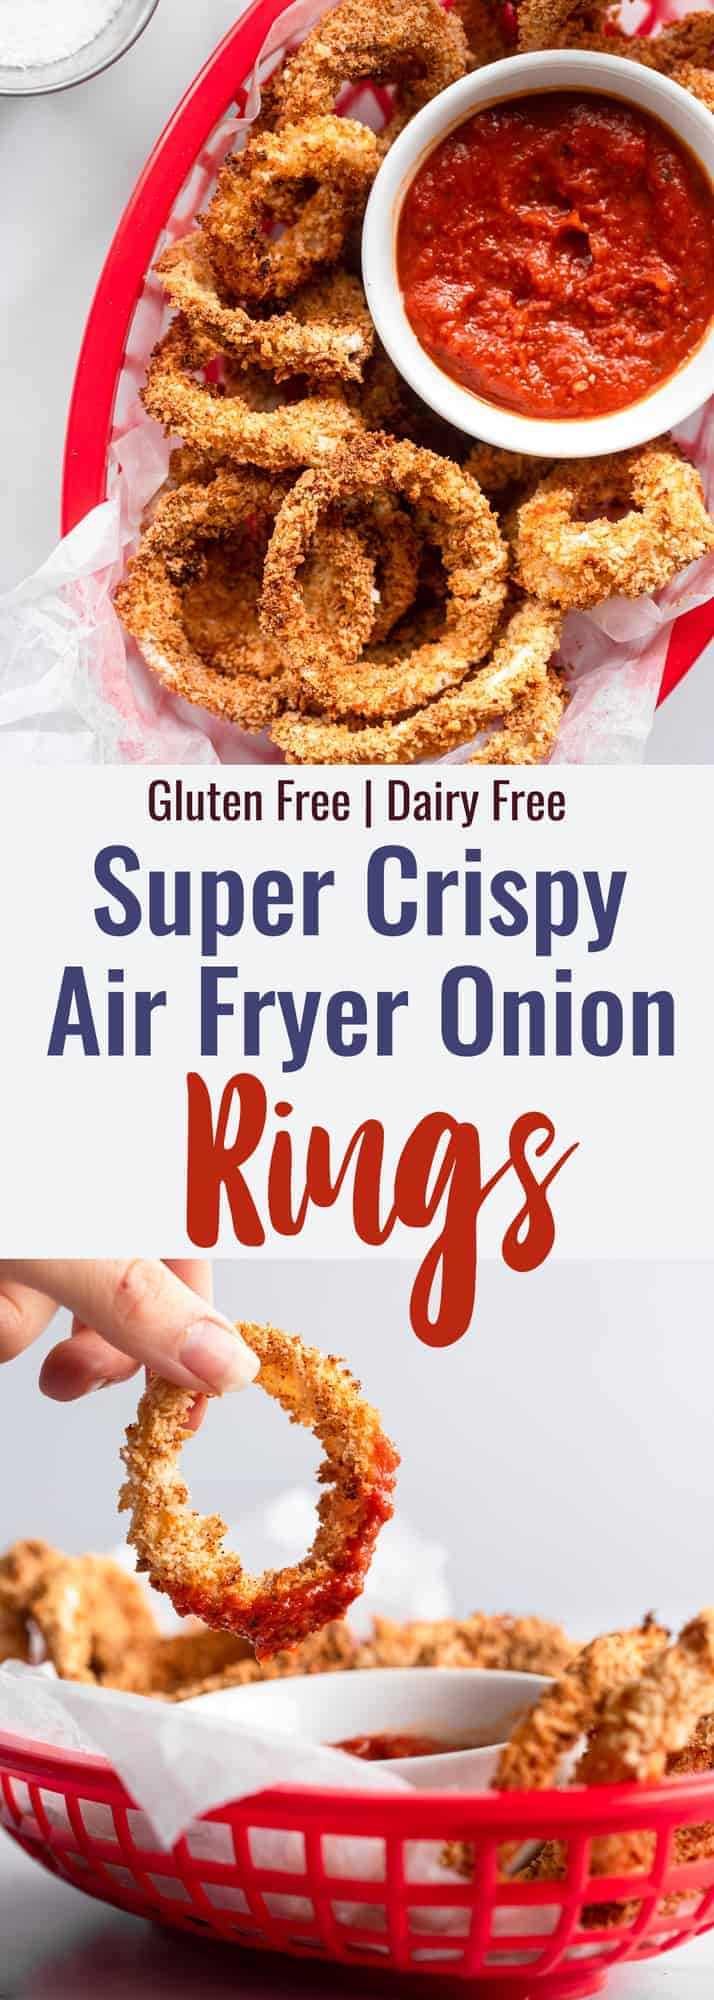 Air Fried Onion Rings collage photo